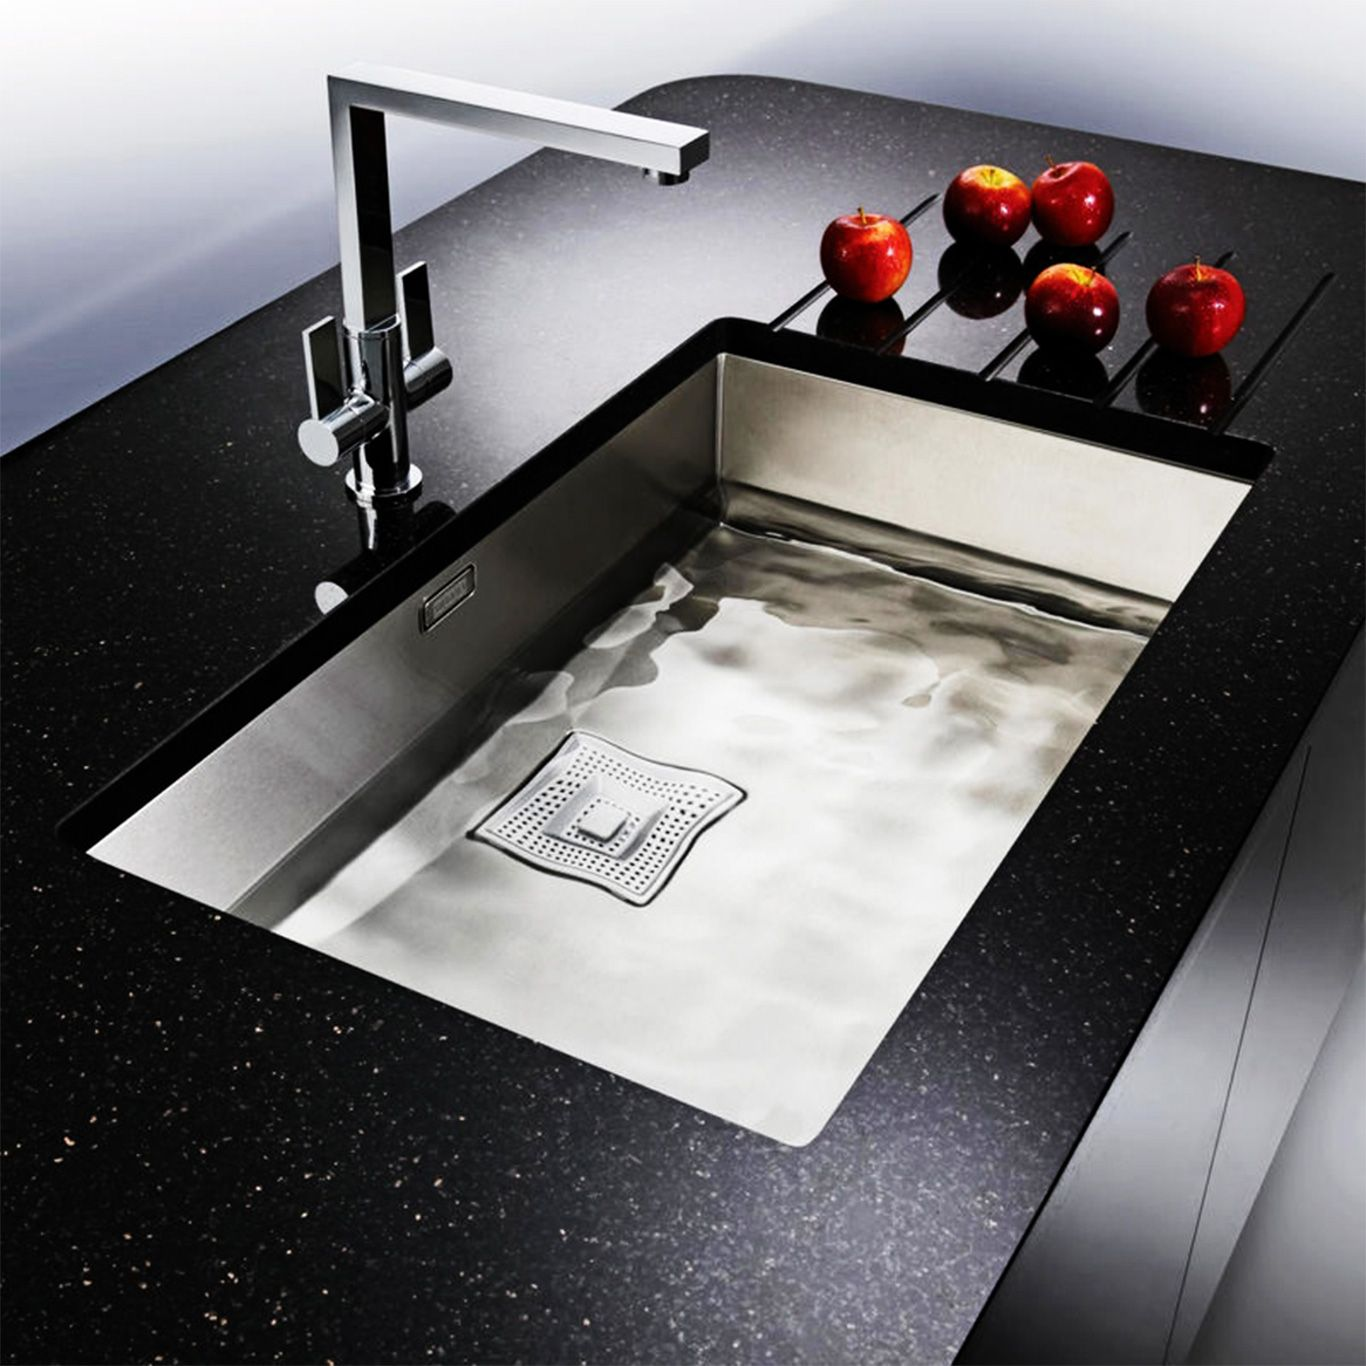 Awesome Modern Dark Countertop And Stylish Undermount Stainless Steel Kitchen Sink  On Long Counter Near White Wall